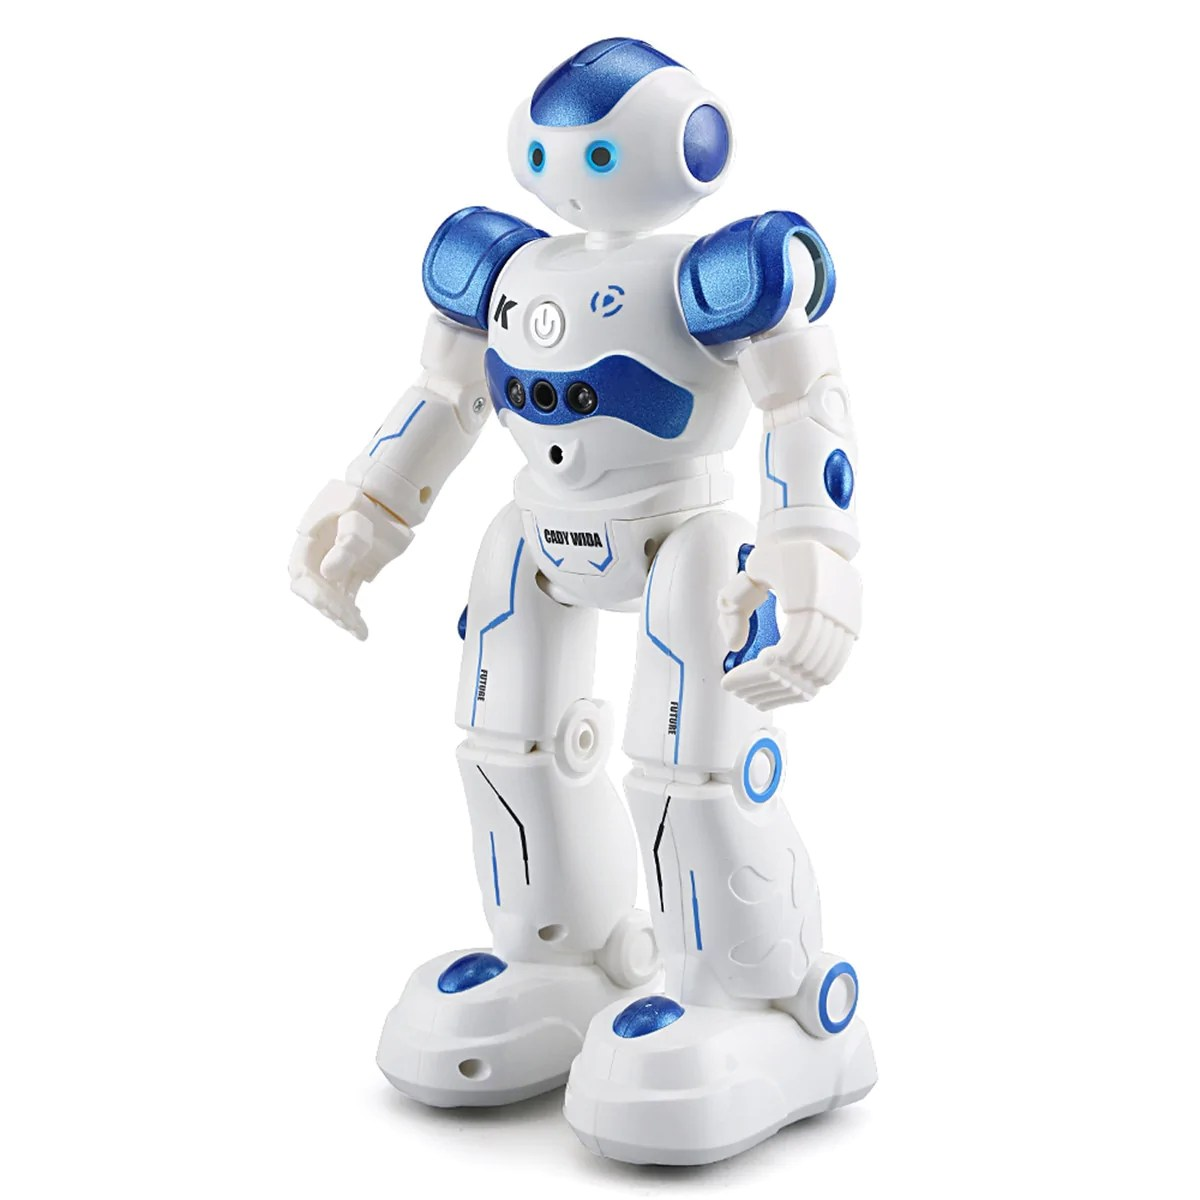 Children Robot Leory Rc Robot Intelligent Programming Remote Control Robotica Toy Biped Humanoid Robot For Children Kids Birthday Gift Present